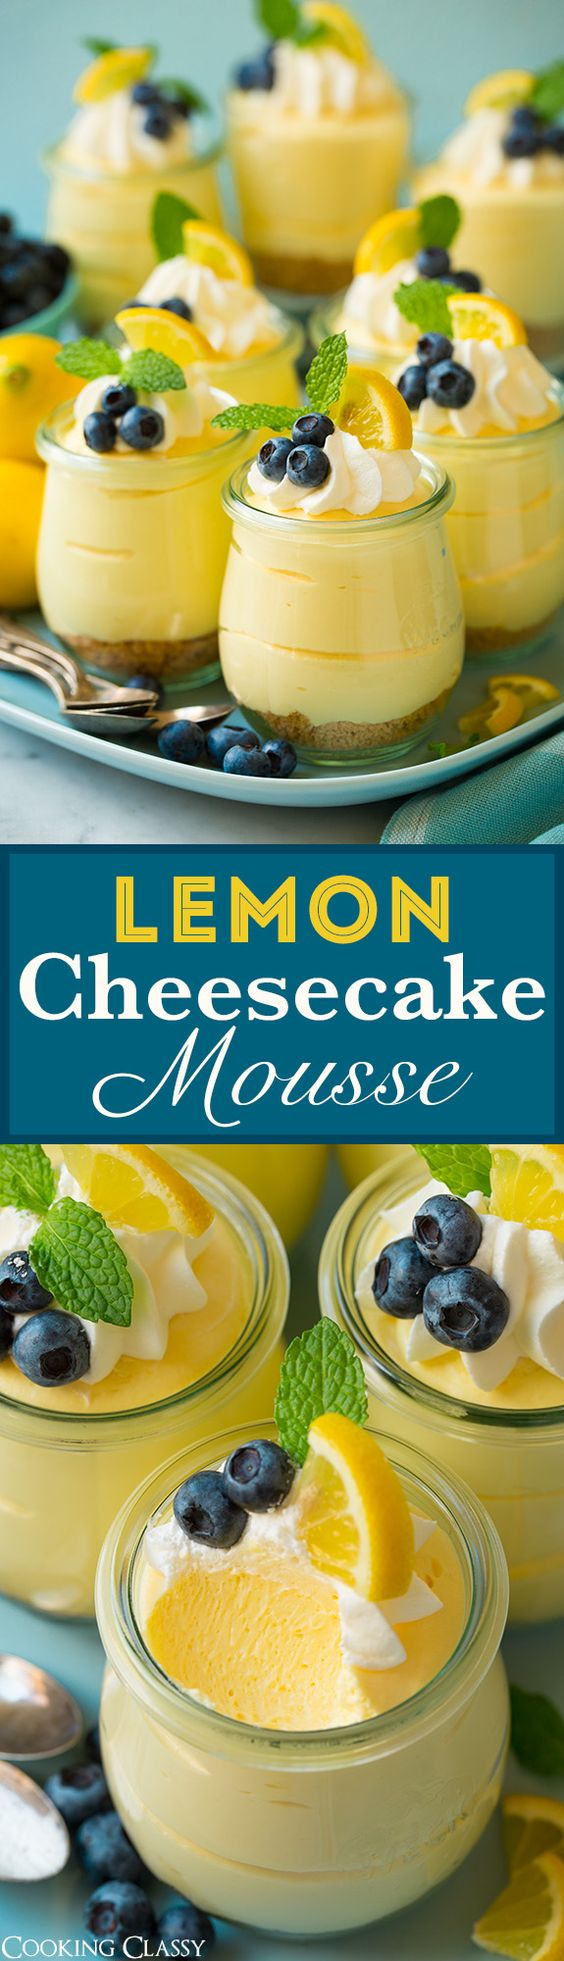 Lemon Cheesecake Mousse Recipe via Cooking Classy - the ULTIMATE spring dessert! These are to die for! No one can stop at one bite! The BEST Easy Lemon Desserts and Treats Recipes - Perfect For Easter, Mother's Day Brunch, Bridal or Baby Showers and Pretty Spring and Summer Holiday Party Refreshments! #lemondesserts #lemonrecipes #easylemonrecipes #lemon #lemontreats #easterdesserts #mothersdaydesserts #springdesserts #holidaydesserts #summerdesserts